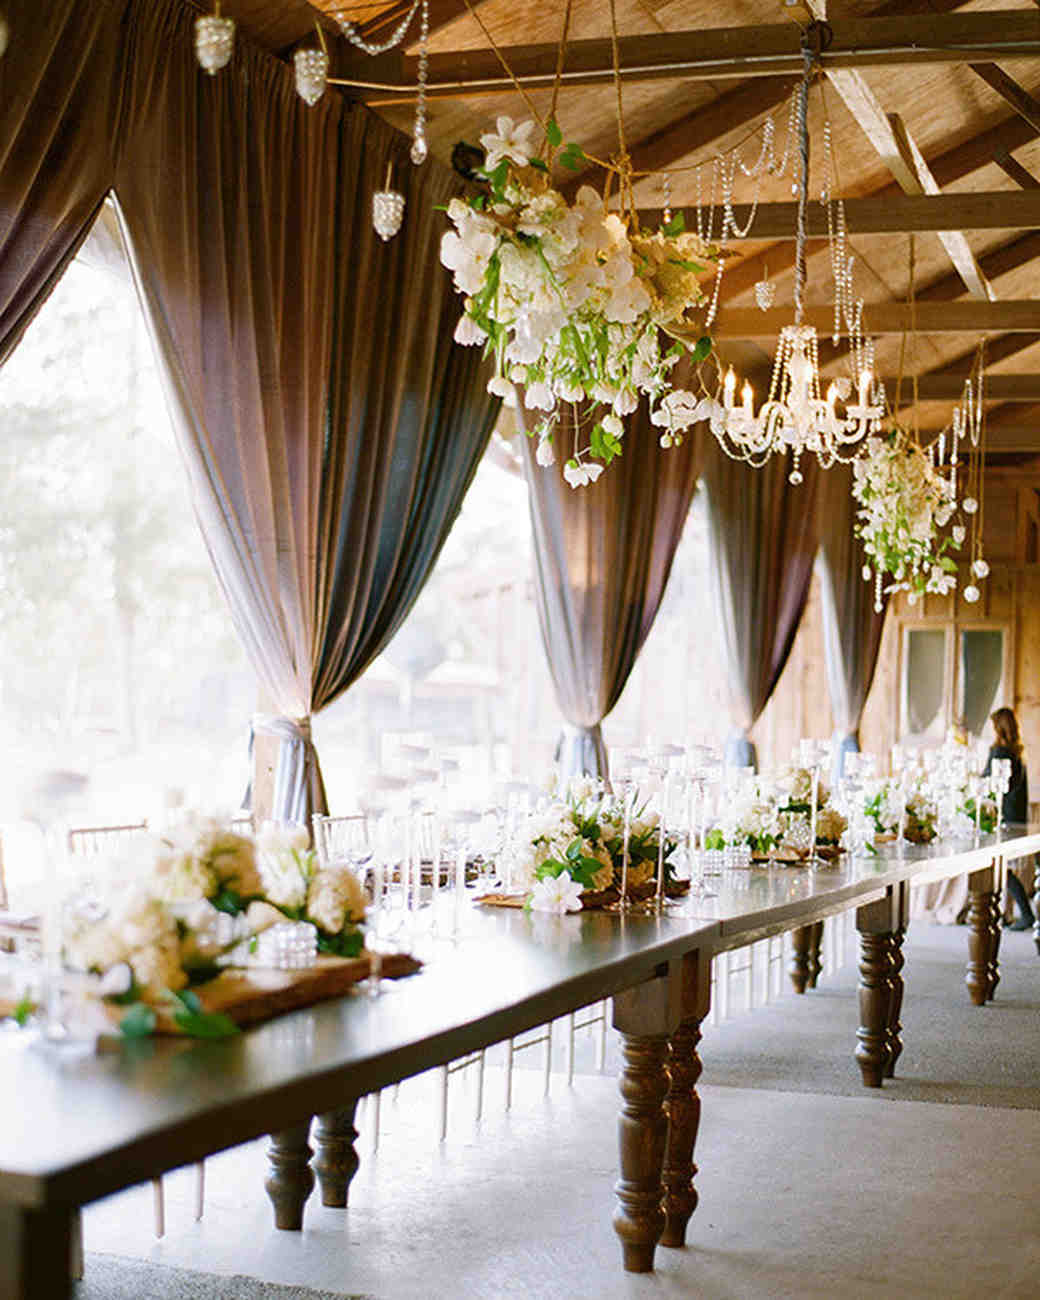 7 Barn Wedding Decoration Ideas For A Spring Wedding: 11 Clever Ways To Elevate Your Barn Wedding